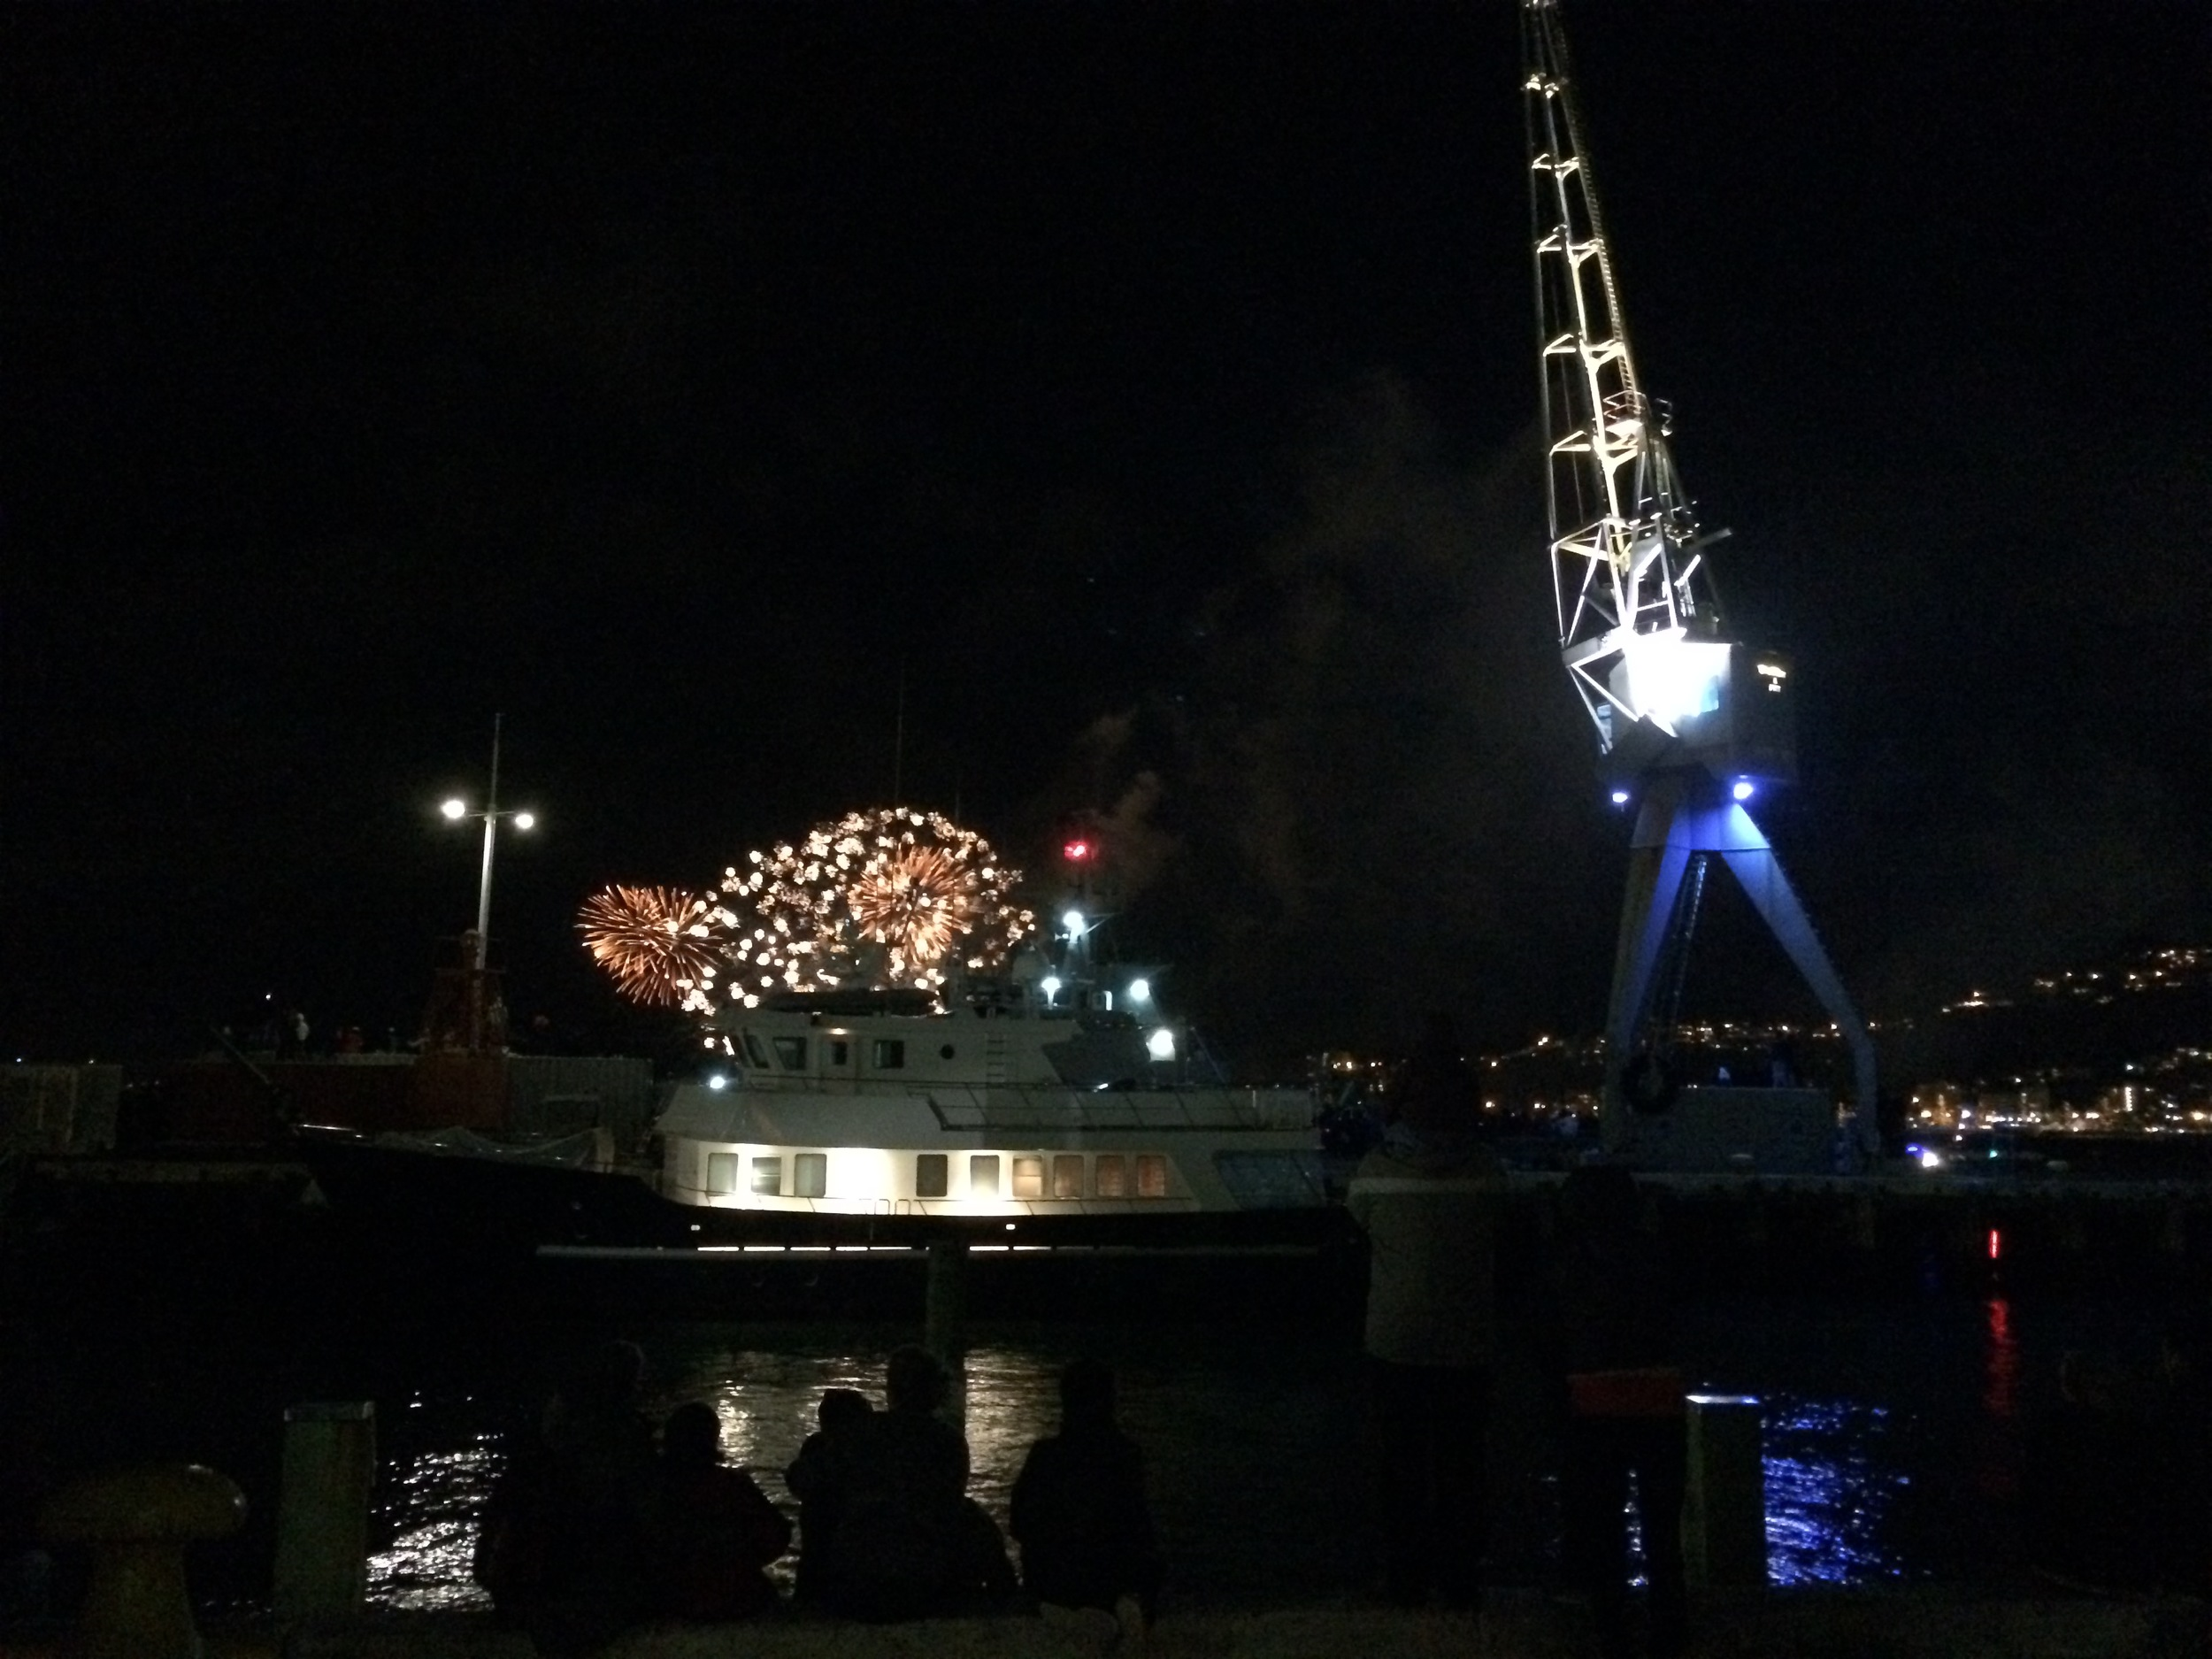 Fireworks night on the waterfront